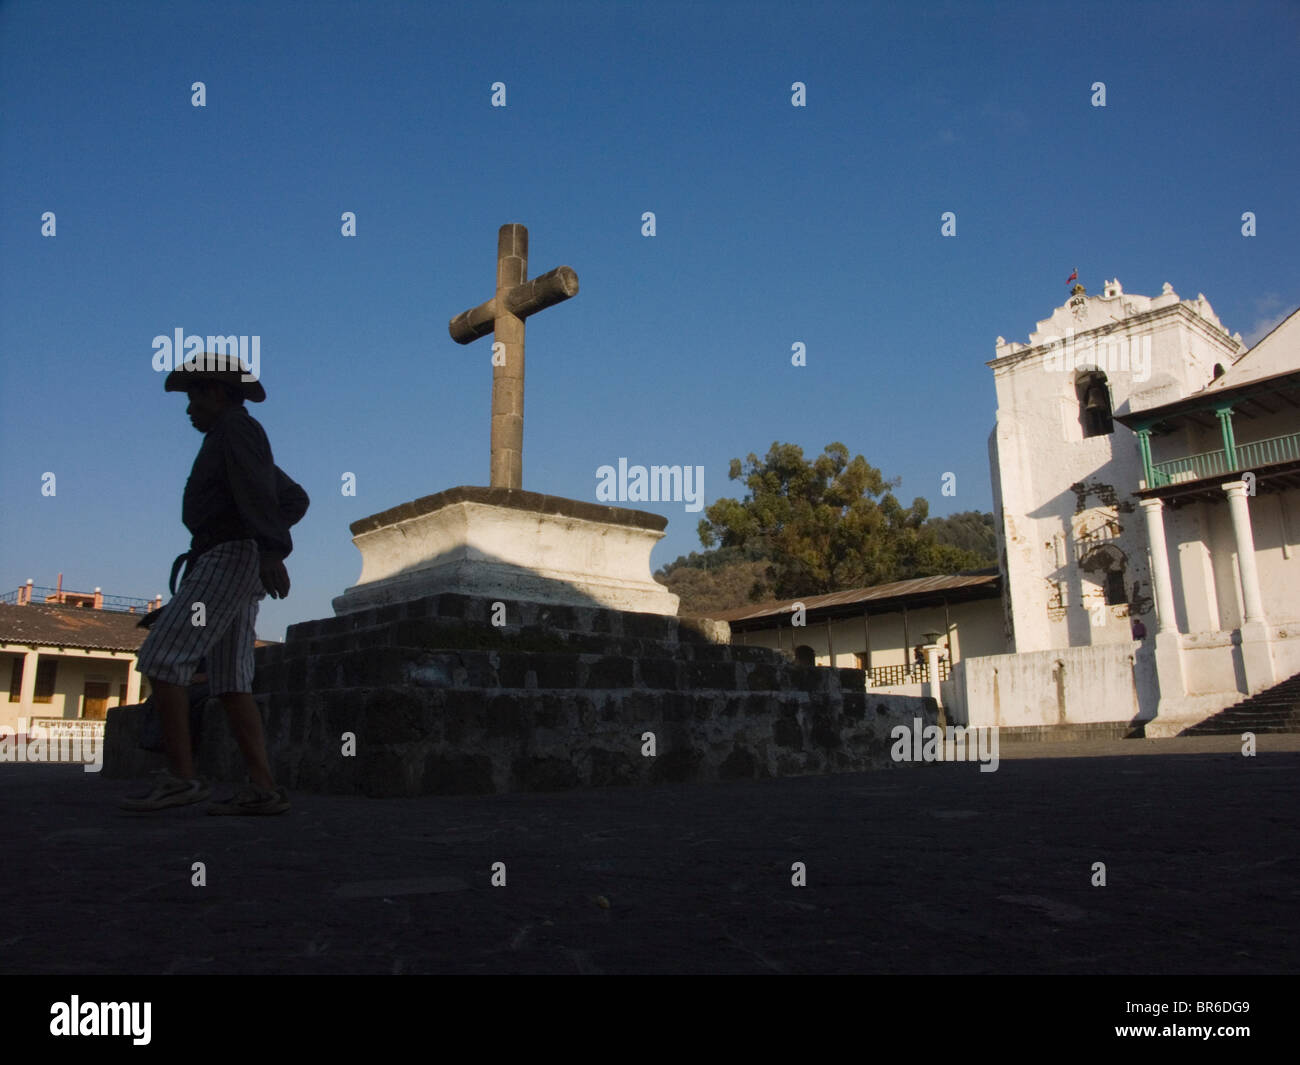 A man silhouetted walks in front of a church. Santiago Guatemala. - Stock Image